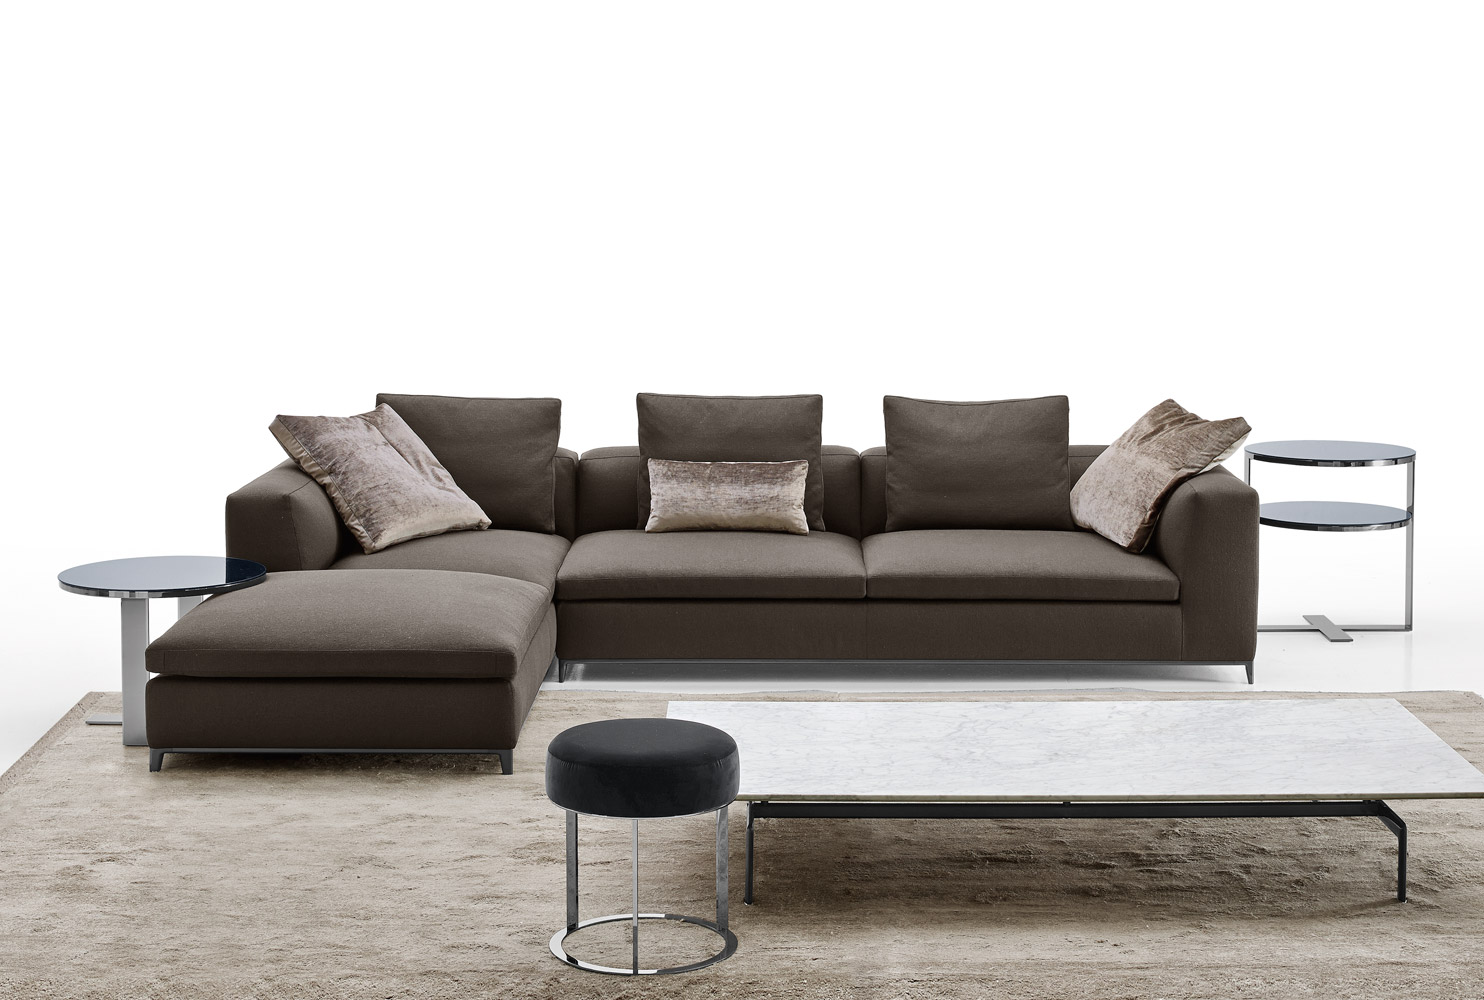 canasta 13 b b italia download bim objects sofas. Black Bedroom Furniture Sets. Home Design Ideas